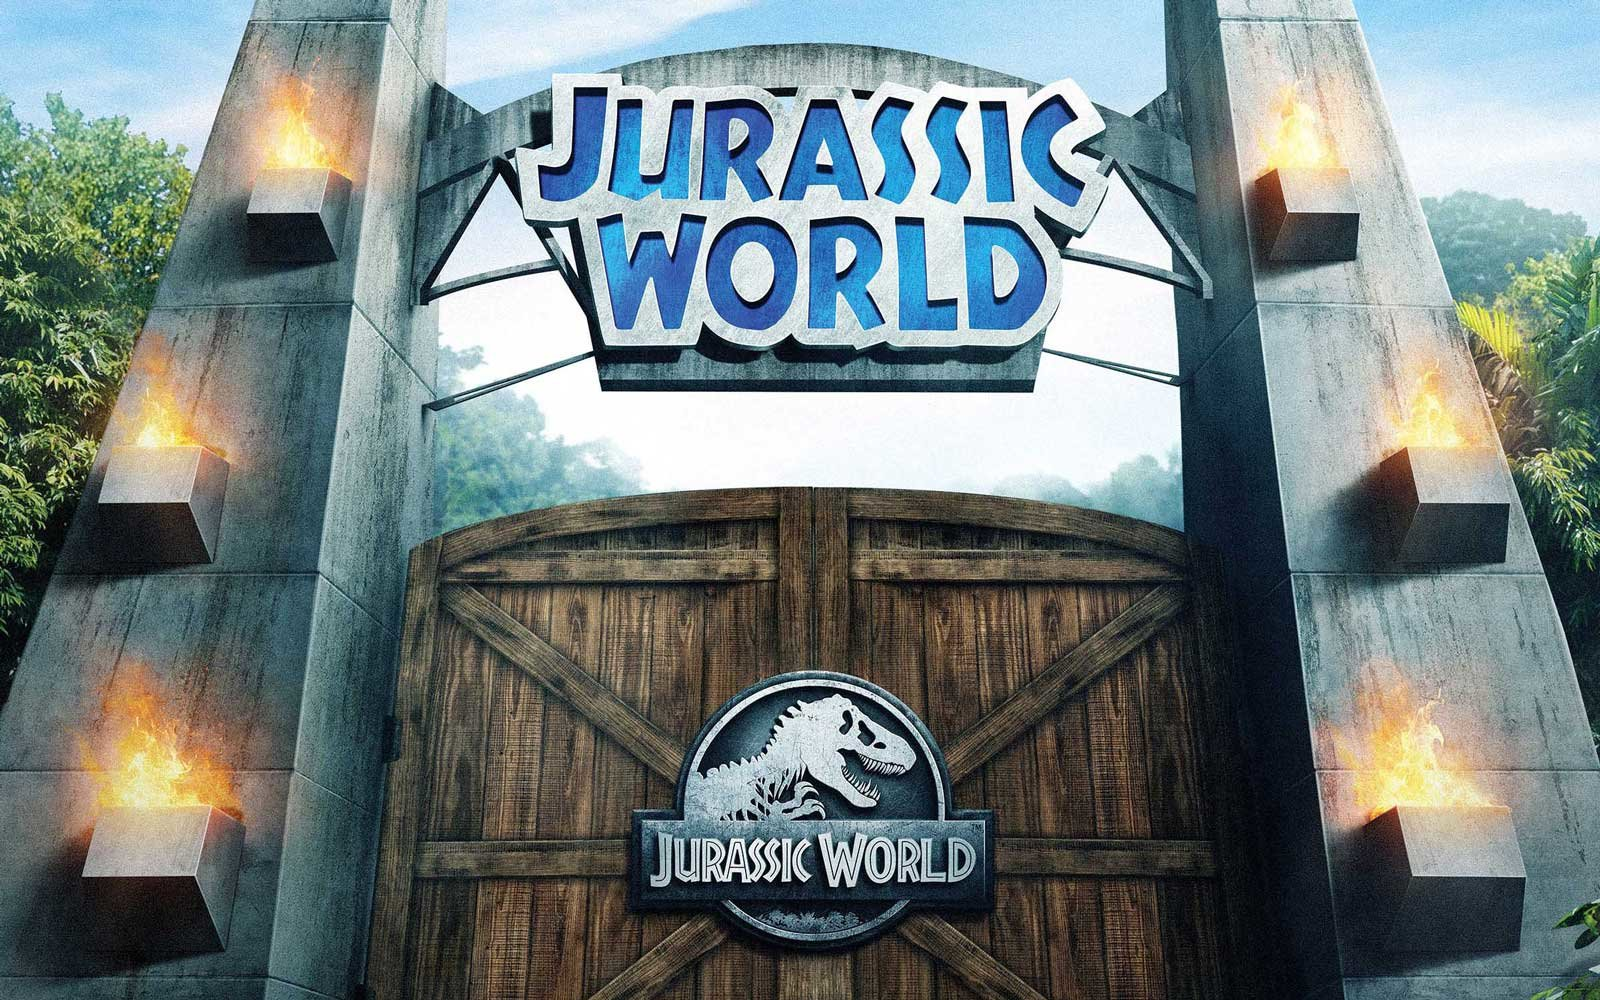 Jurassic World ride coming to Universal Studios Hollywood